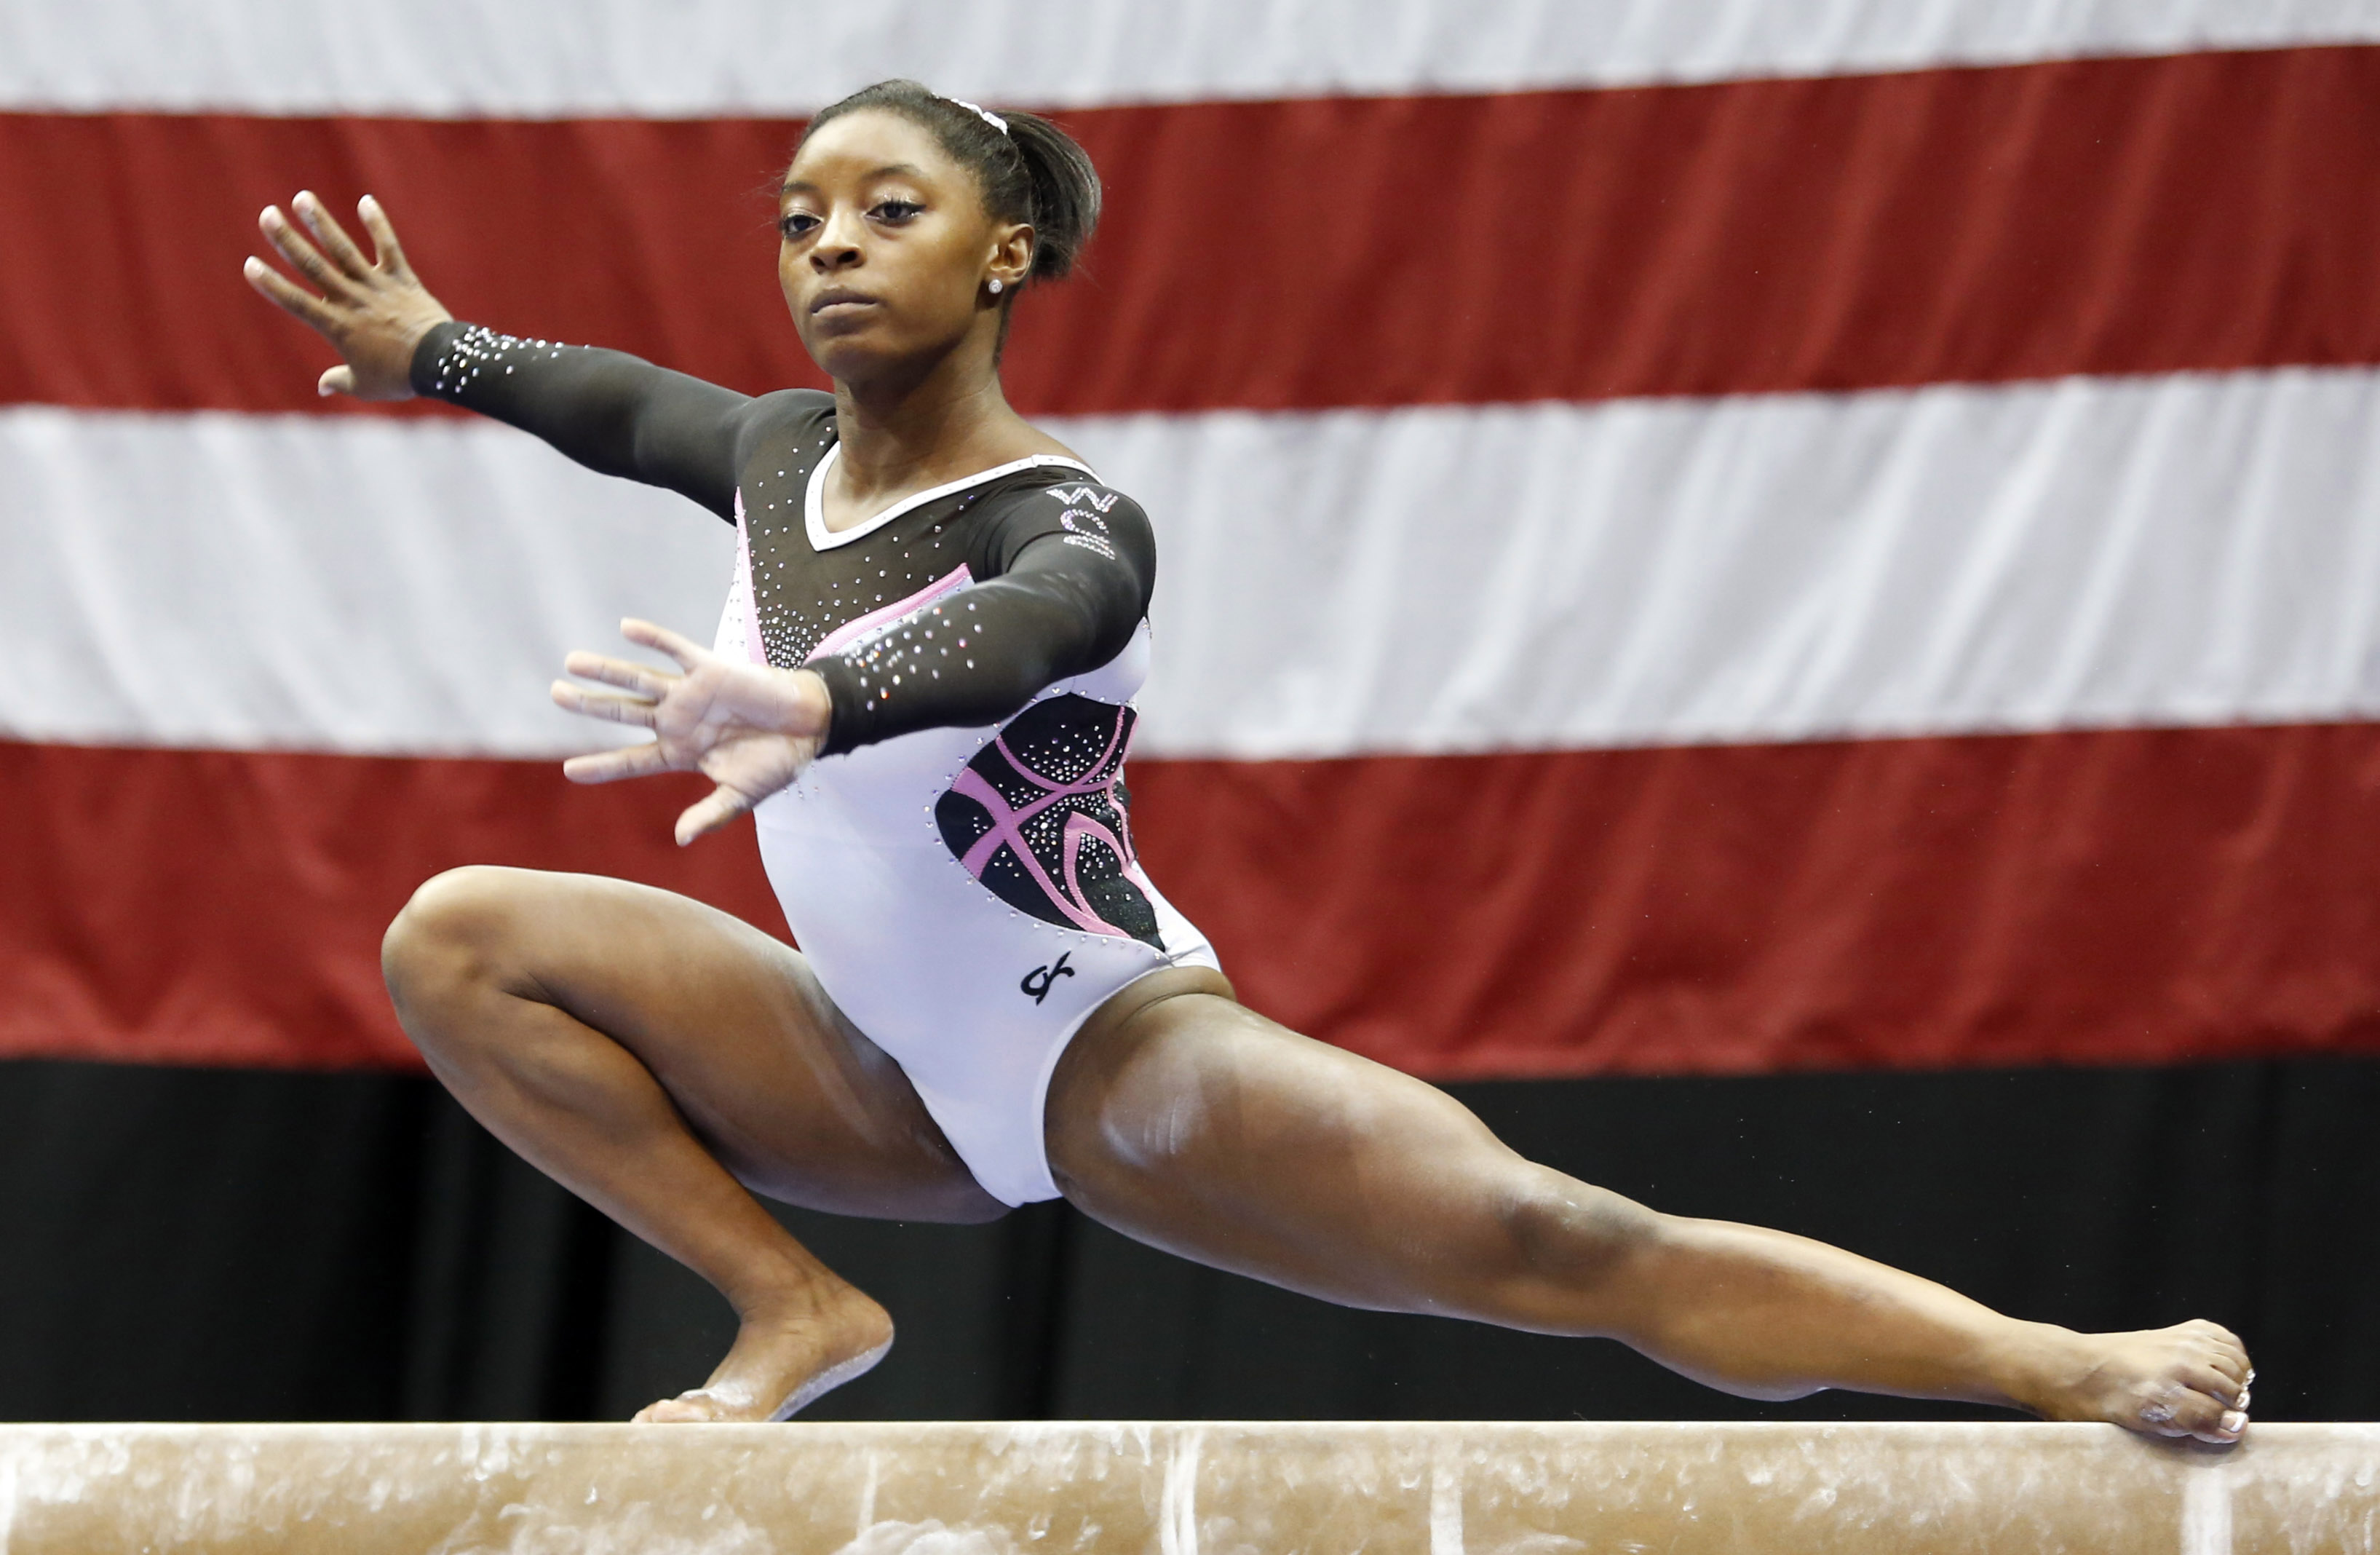 Aug 21, 2014; Pittsburgh, PA, USA; Simone Biles competes on the balance beam in the 2014 P&G Championships at the CONSOL Energy Center. Mandatory Credit: Charles LeClaire-USA TODAY Sports